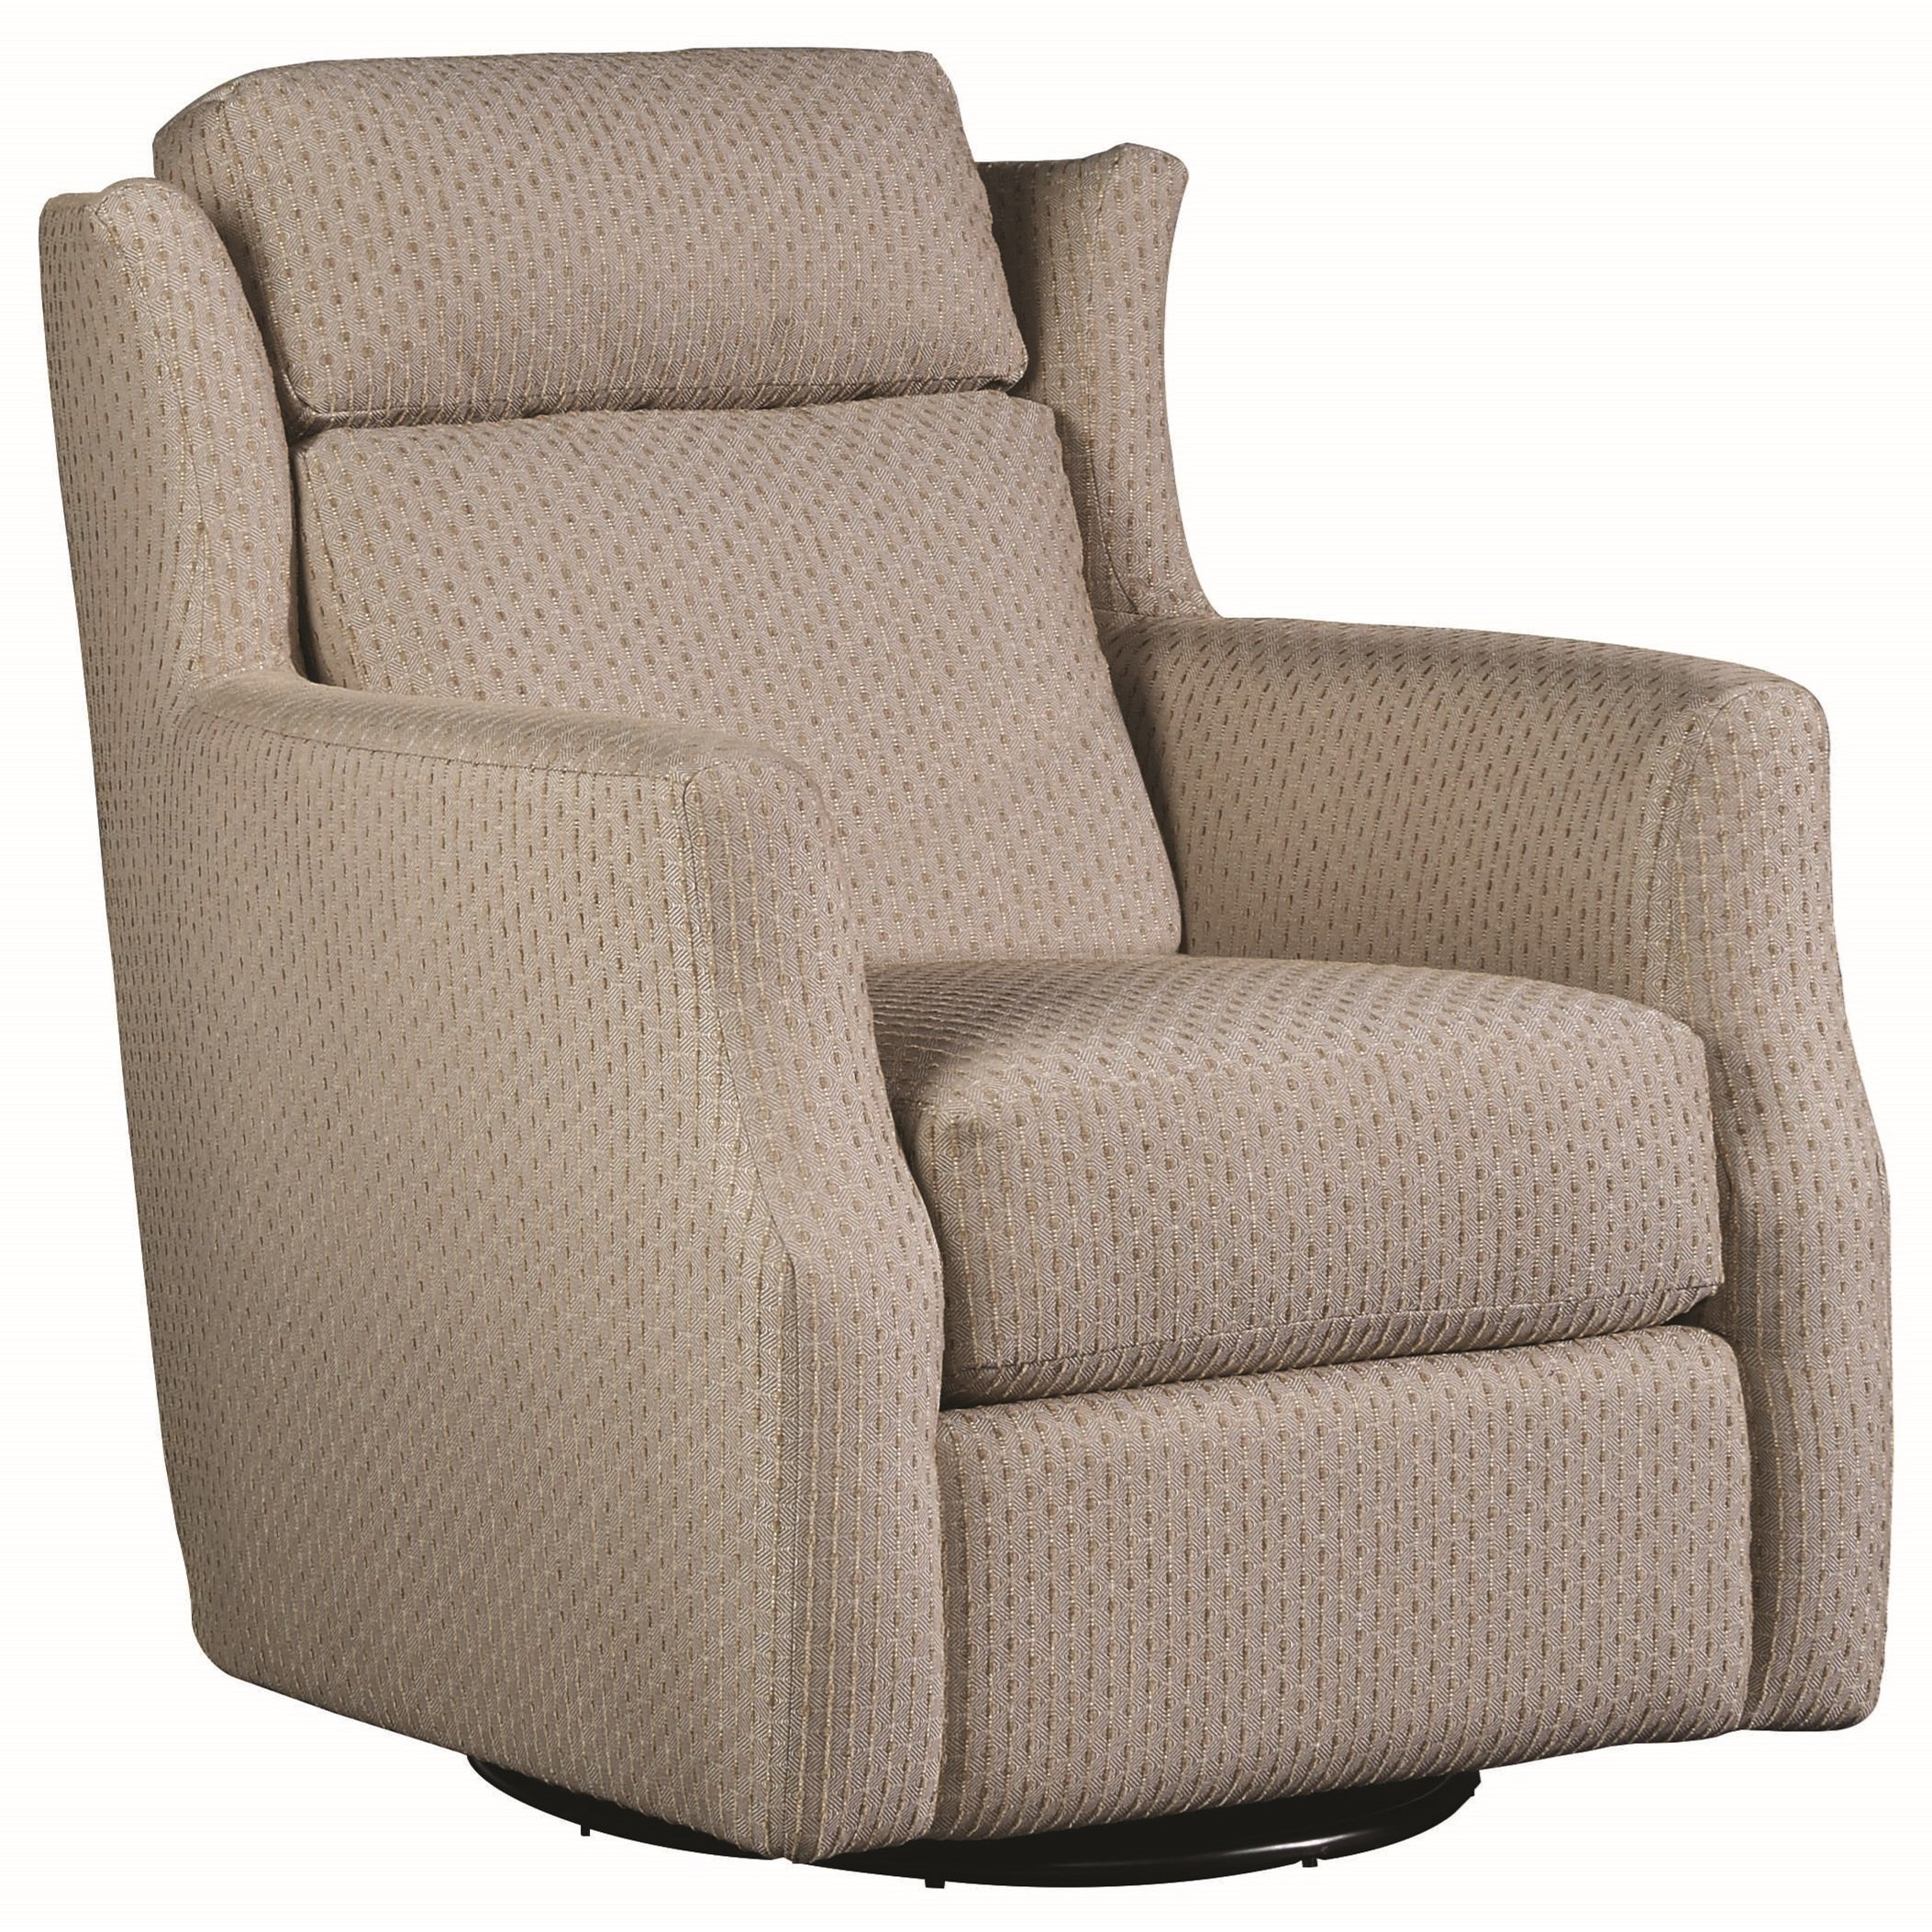 Take Note Swivel Glider by Southern Motion at Suburban Furniture